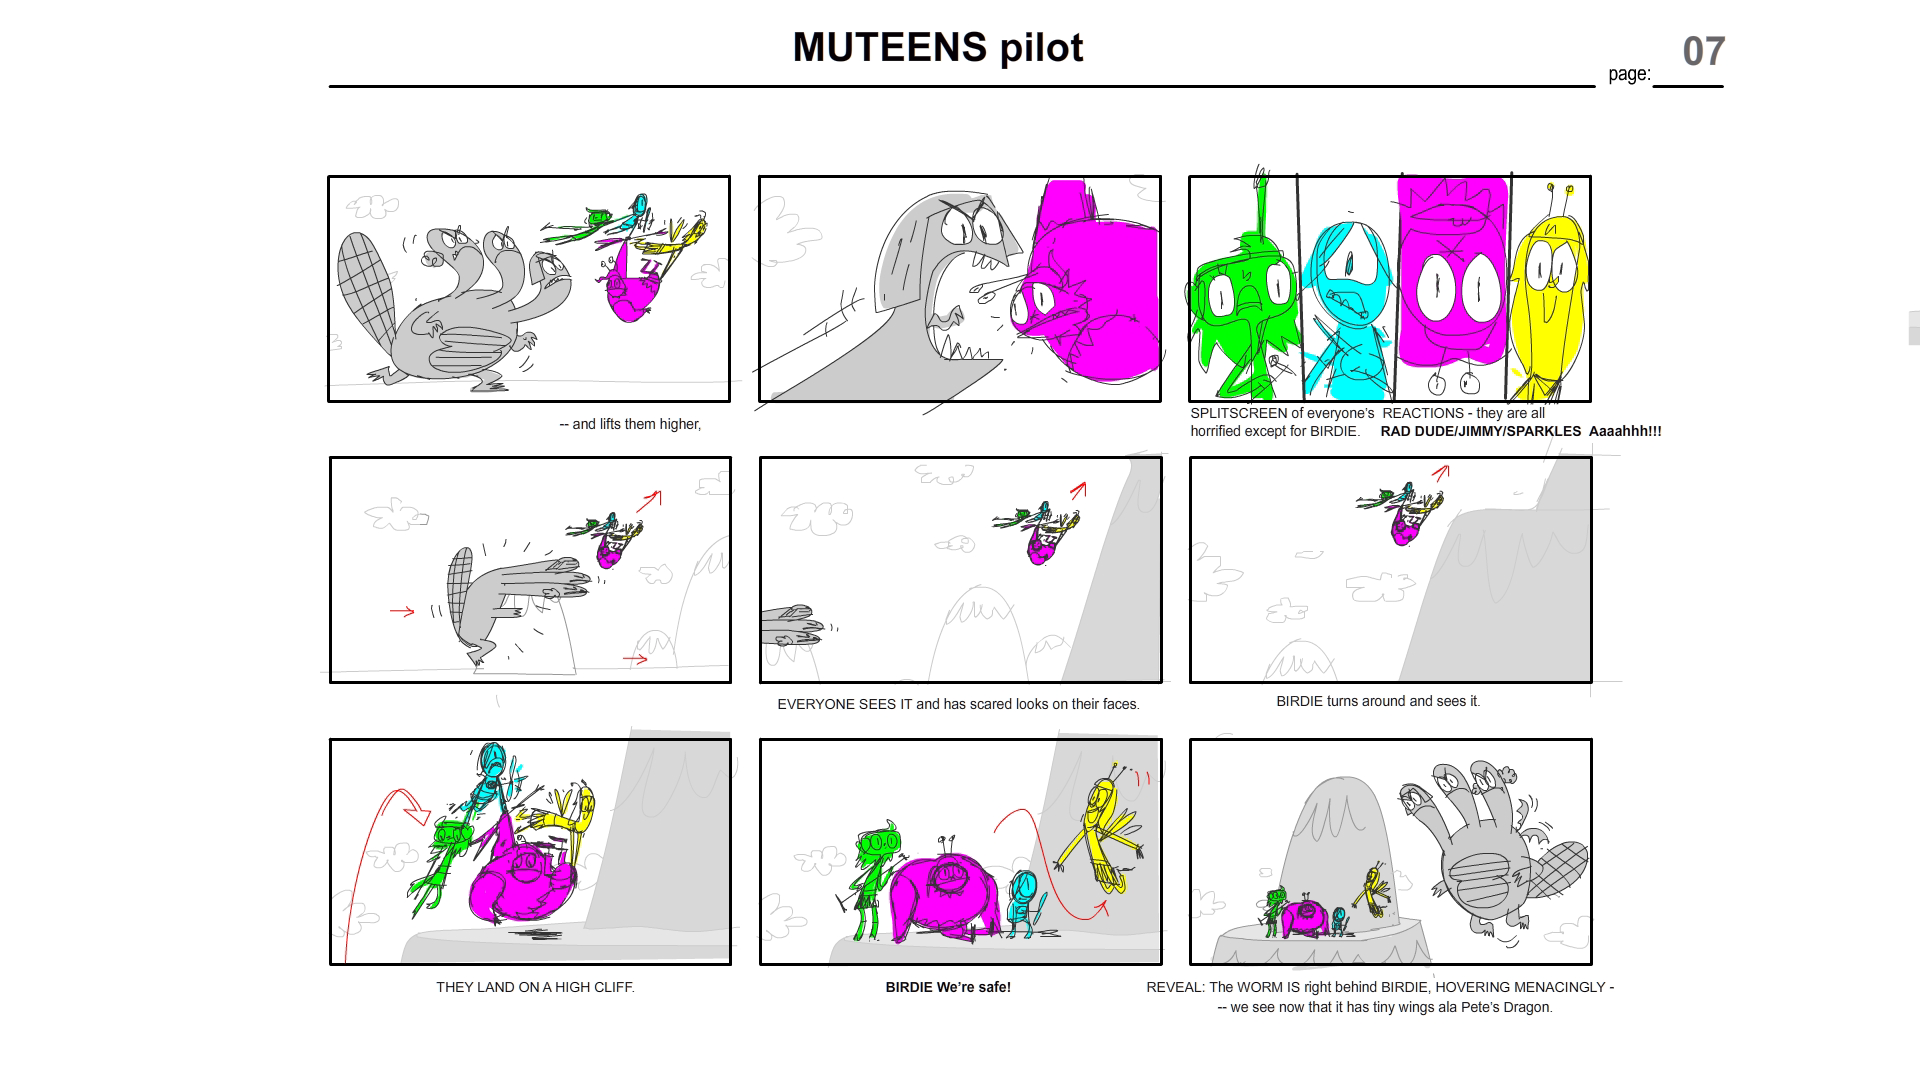 MikeOwens_STORYBOARDS_Muteens_01_Page_7.png